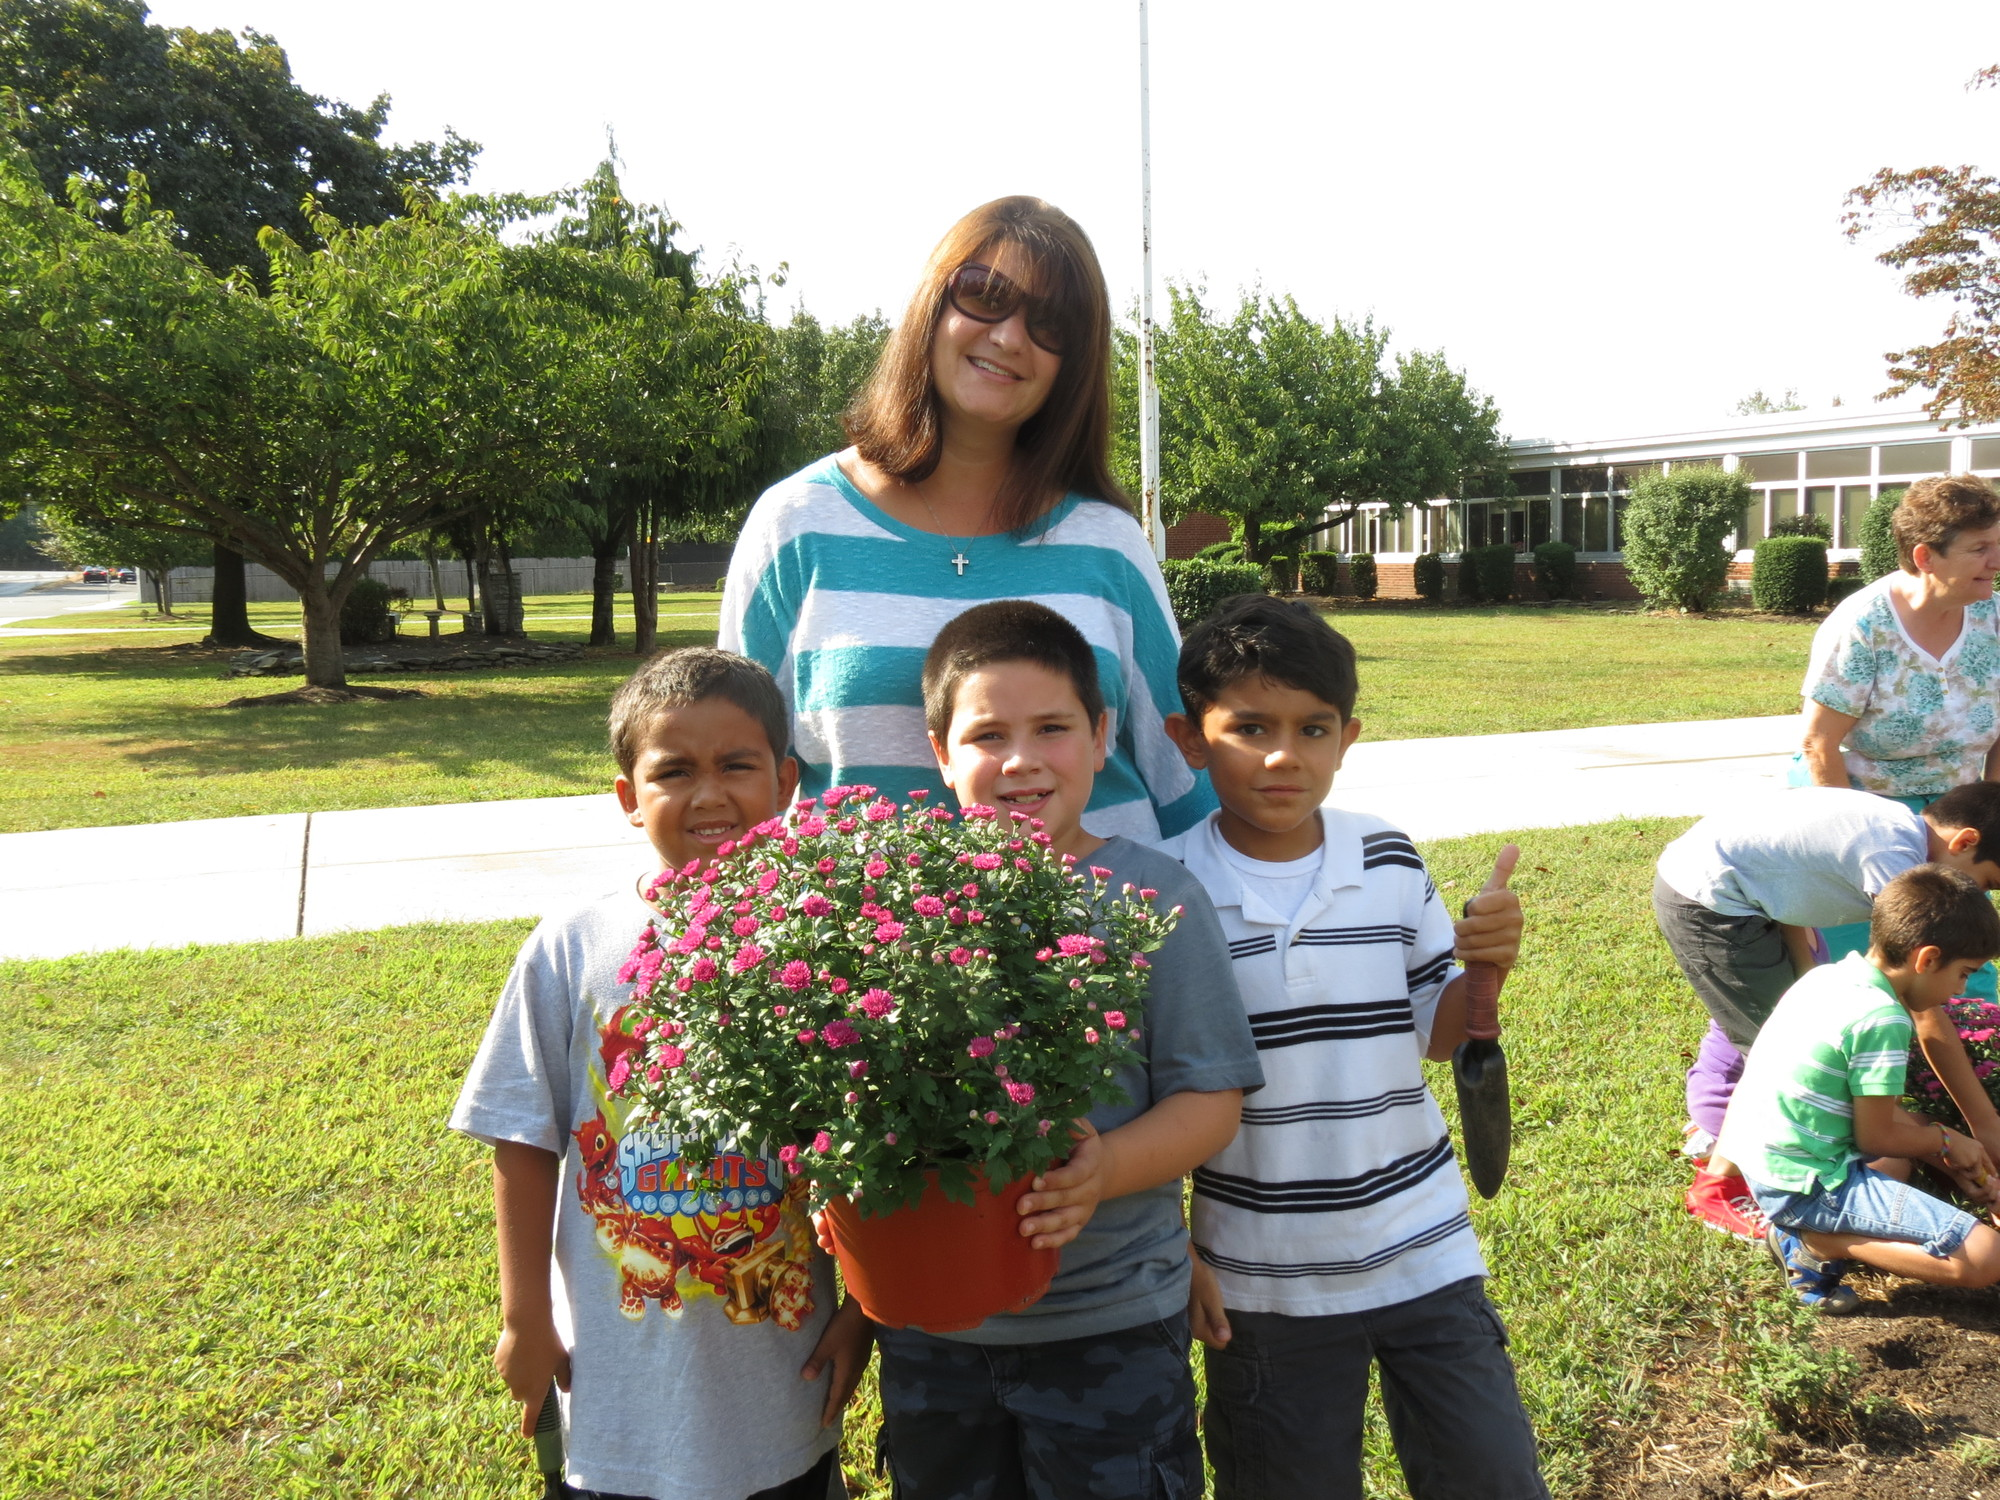 Meadowbrook PTA member Margaret Rosenthal assisted second-graders with planting an array of fresh asters and mums during the gardening event.